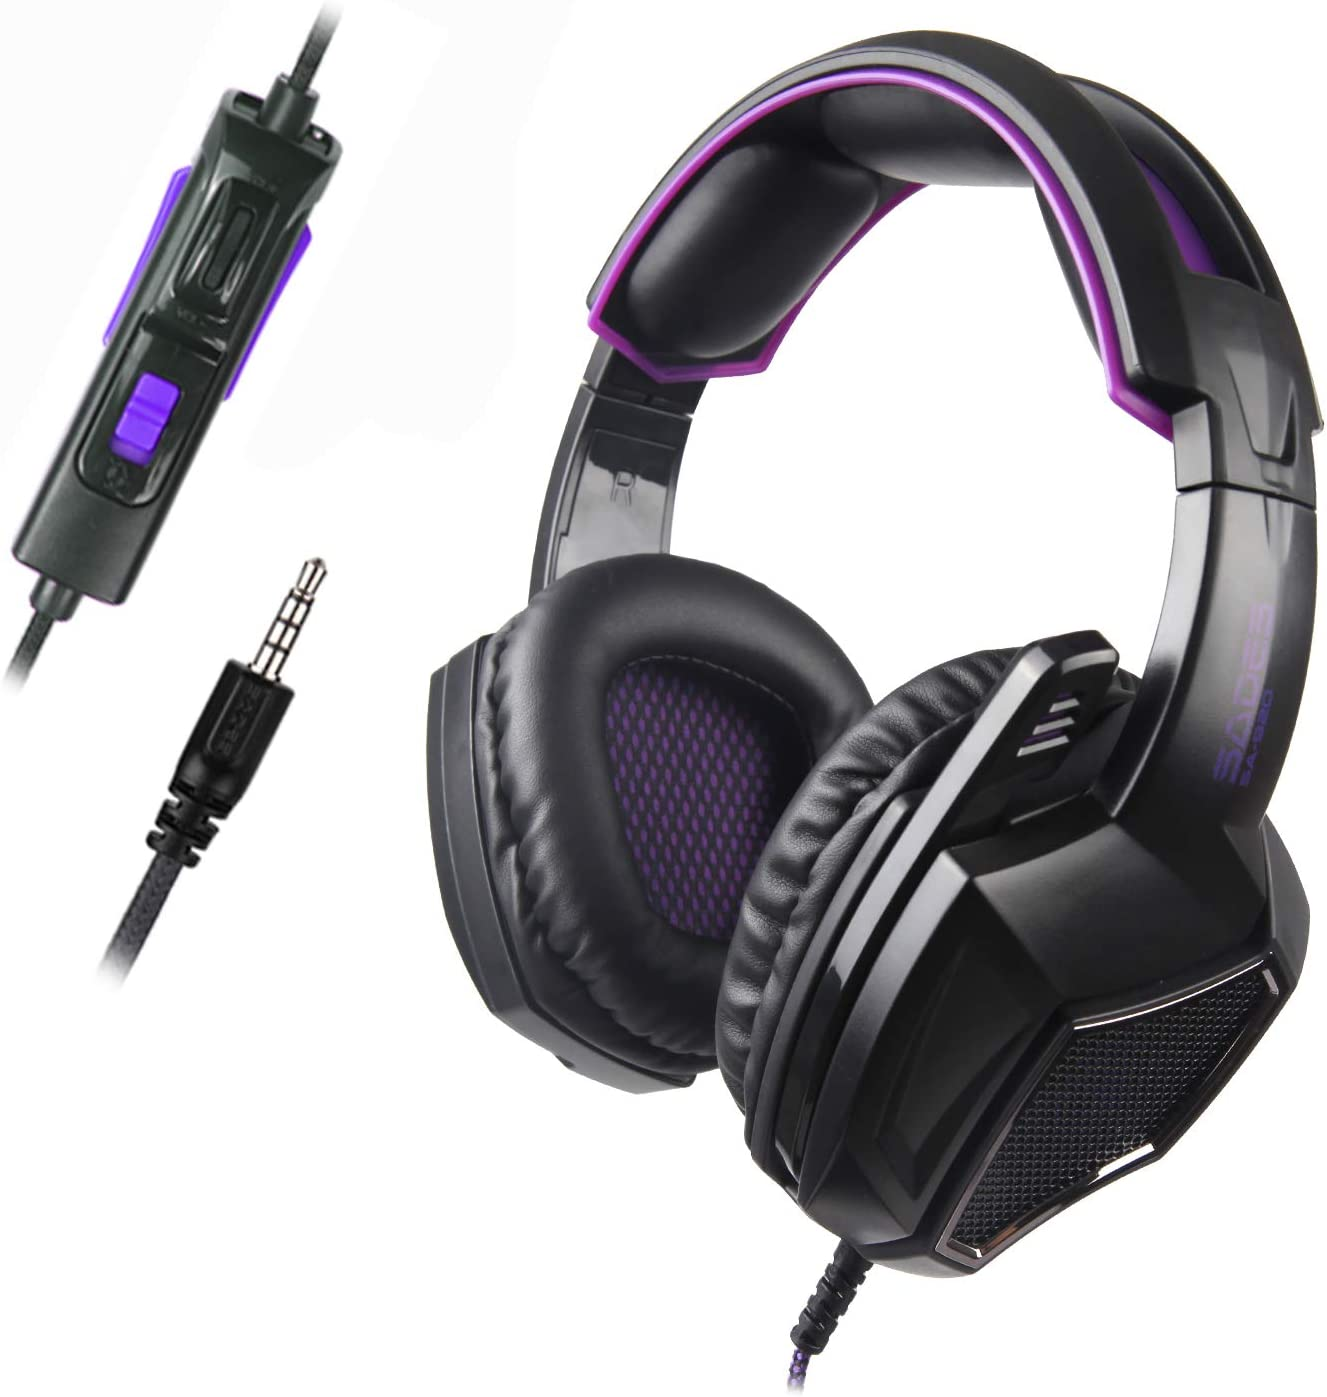 Sades SA920 3.5mm Wired Over Ear Stereo Bass Gaming Headphone Headset with Microphone for New Box one PS4 PC iOS Computer Smart Phones Mobiles Laptop Mac Black Purple